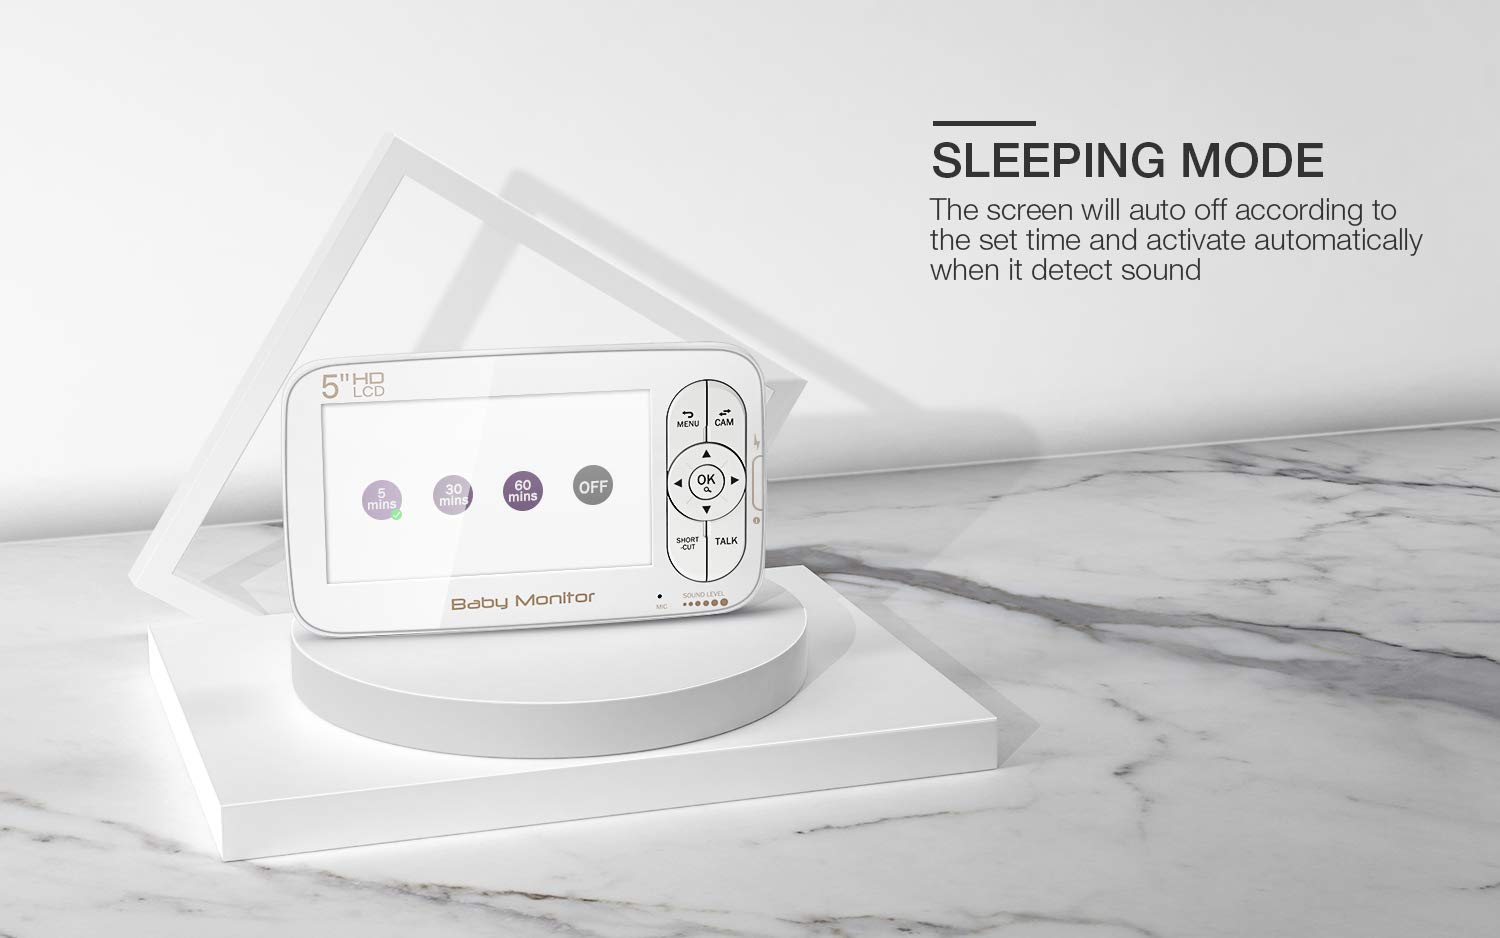 Baby Monitor, BOIFUN Baby Video Camera with 5'' 1280x720P HD Screen 2000mAh Rechargeable Battery with VOX Night Vision Temperature Monitor Two-Way Talk 355 Degree Remote Control Camera Baby/Elder/Pet BOIFUN Sleep Mode & Night Vision----In Sleep mode, The screen on the mother unit is black. Screen will light up when baby starts crying. Night vision distance is 5 meters, so you will never miss any moment of your baby, and it frees yourself from the hustle and bustle. You will be able to have your own time to read, watch TV, or even enjoy a couple of drinks with your husband. Bring you lots of fun. 2000mAh Battery----2000mAh high-capacity battery (mother unit), lasts up to 6 hours with full functions, and 20 hours in sleep mode, from testing results. Let you have longer time get rid of the shackles of the wires. Bring you longer time of fun. 300Meters Extra-Large Range----300m signal coverage area (outdoor test) allows you to cook happily downstairs, enjoy the sun in the pool, or even have a relaxing BBQ time with friends in terrace. Bring you bigger fun. 3